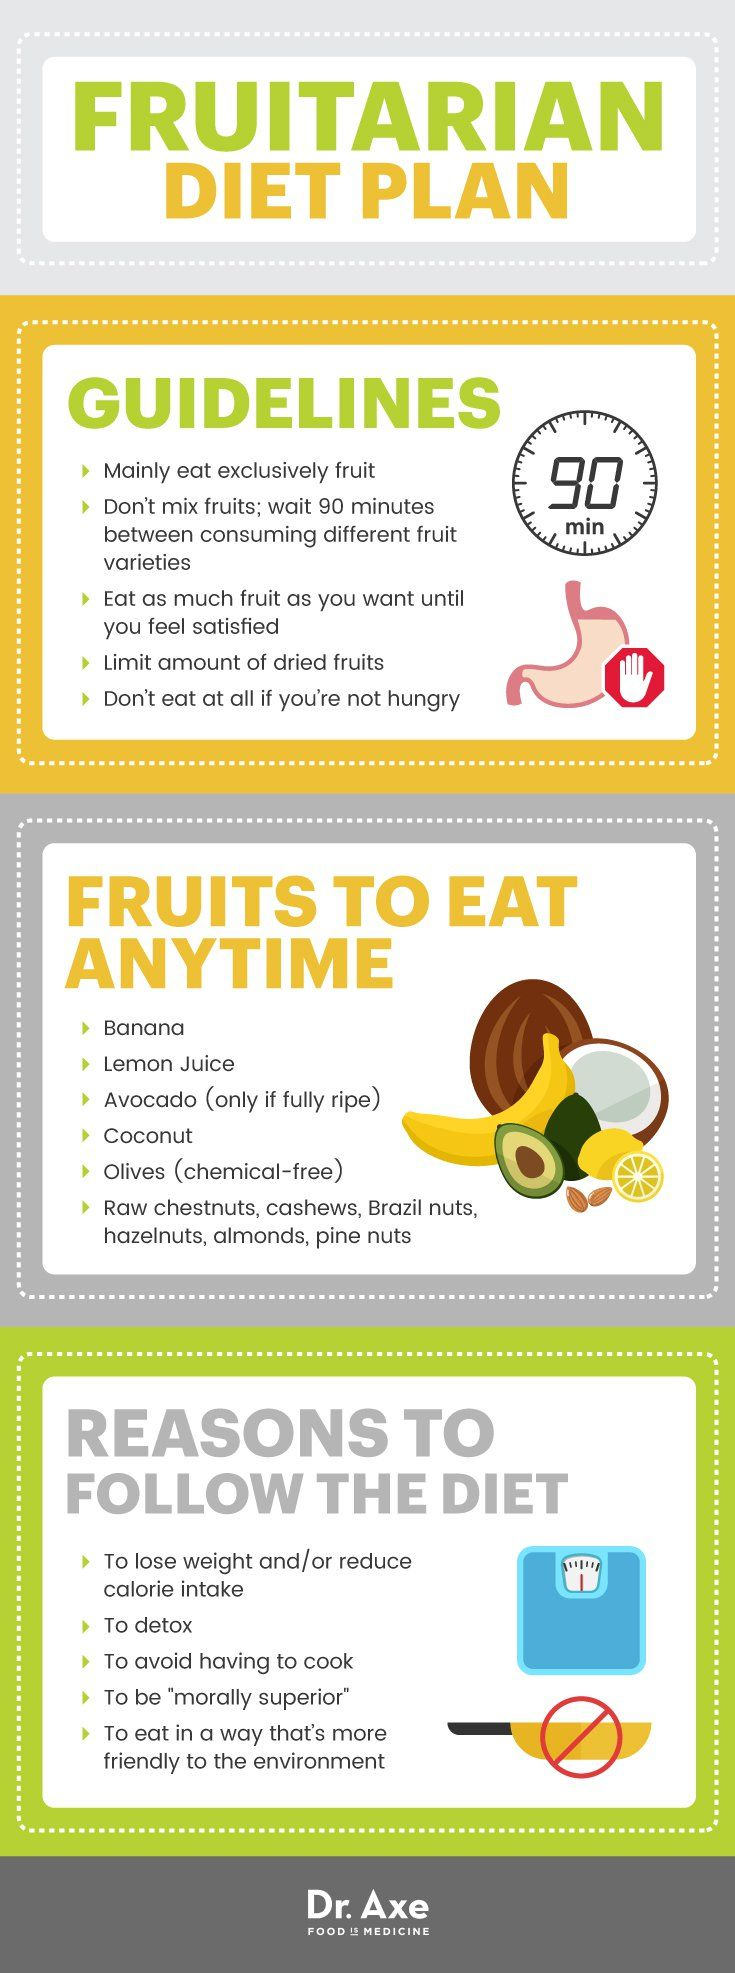 Fruitarian Diet: Is an All-Fruit Diet Healthy or Dangerous